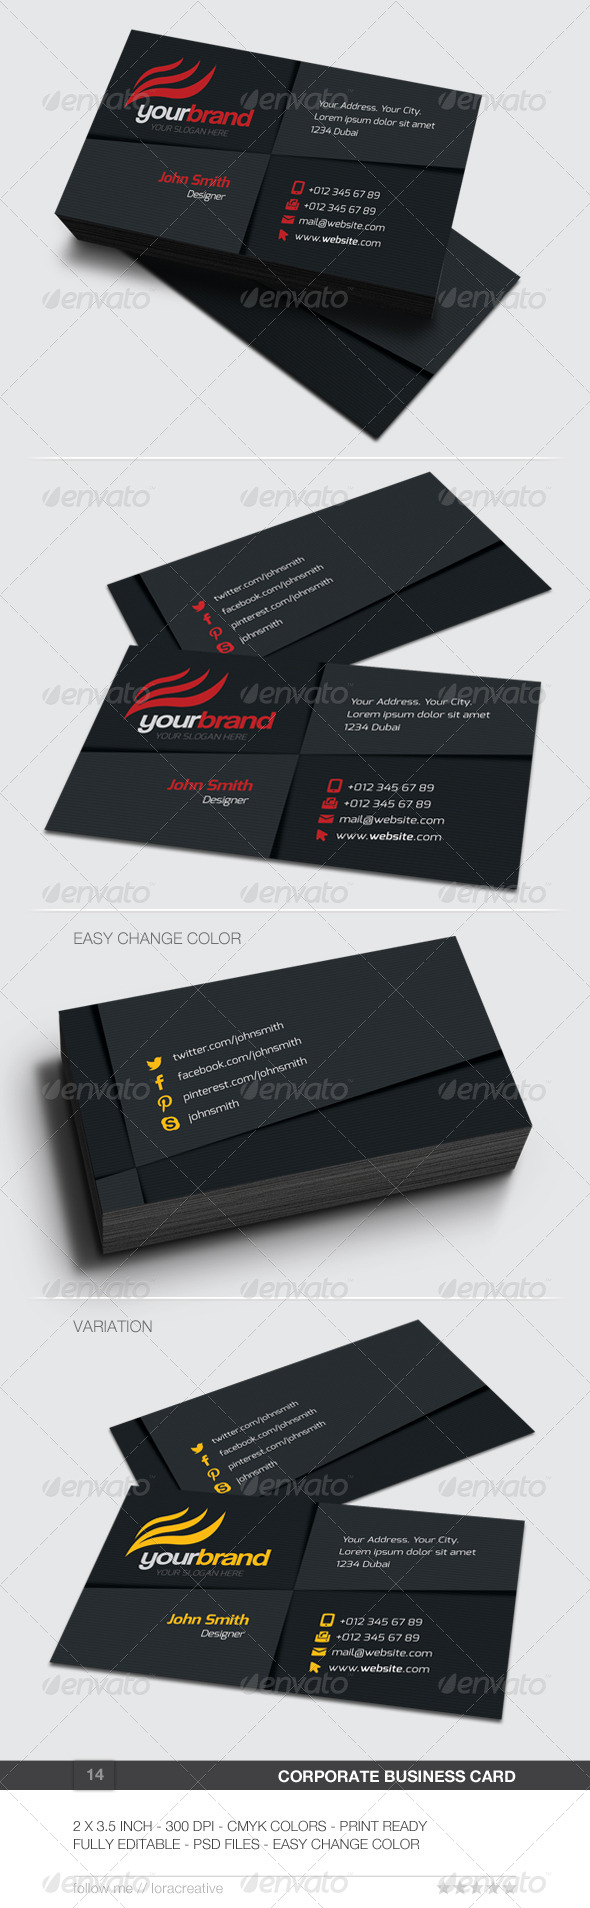 GraphicRiver Corporate Business Card 14 6193108